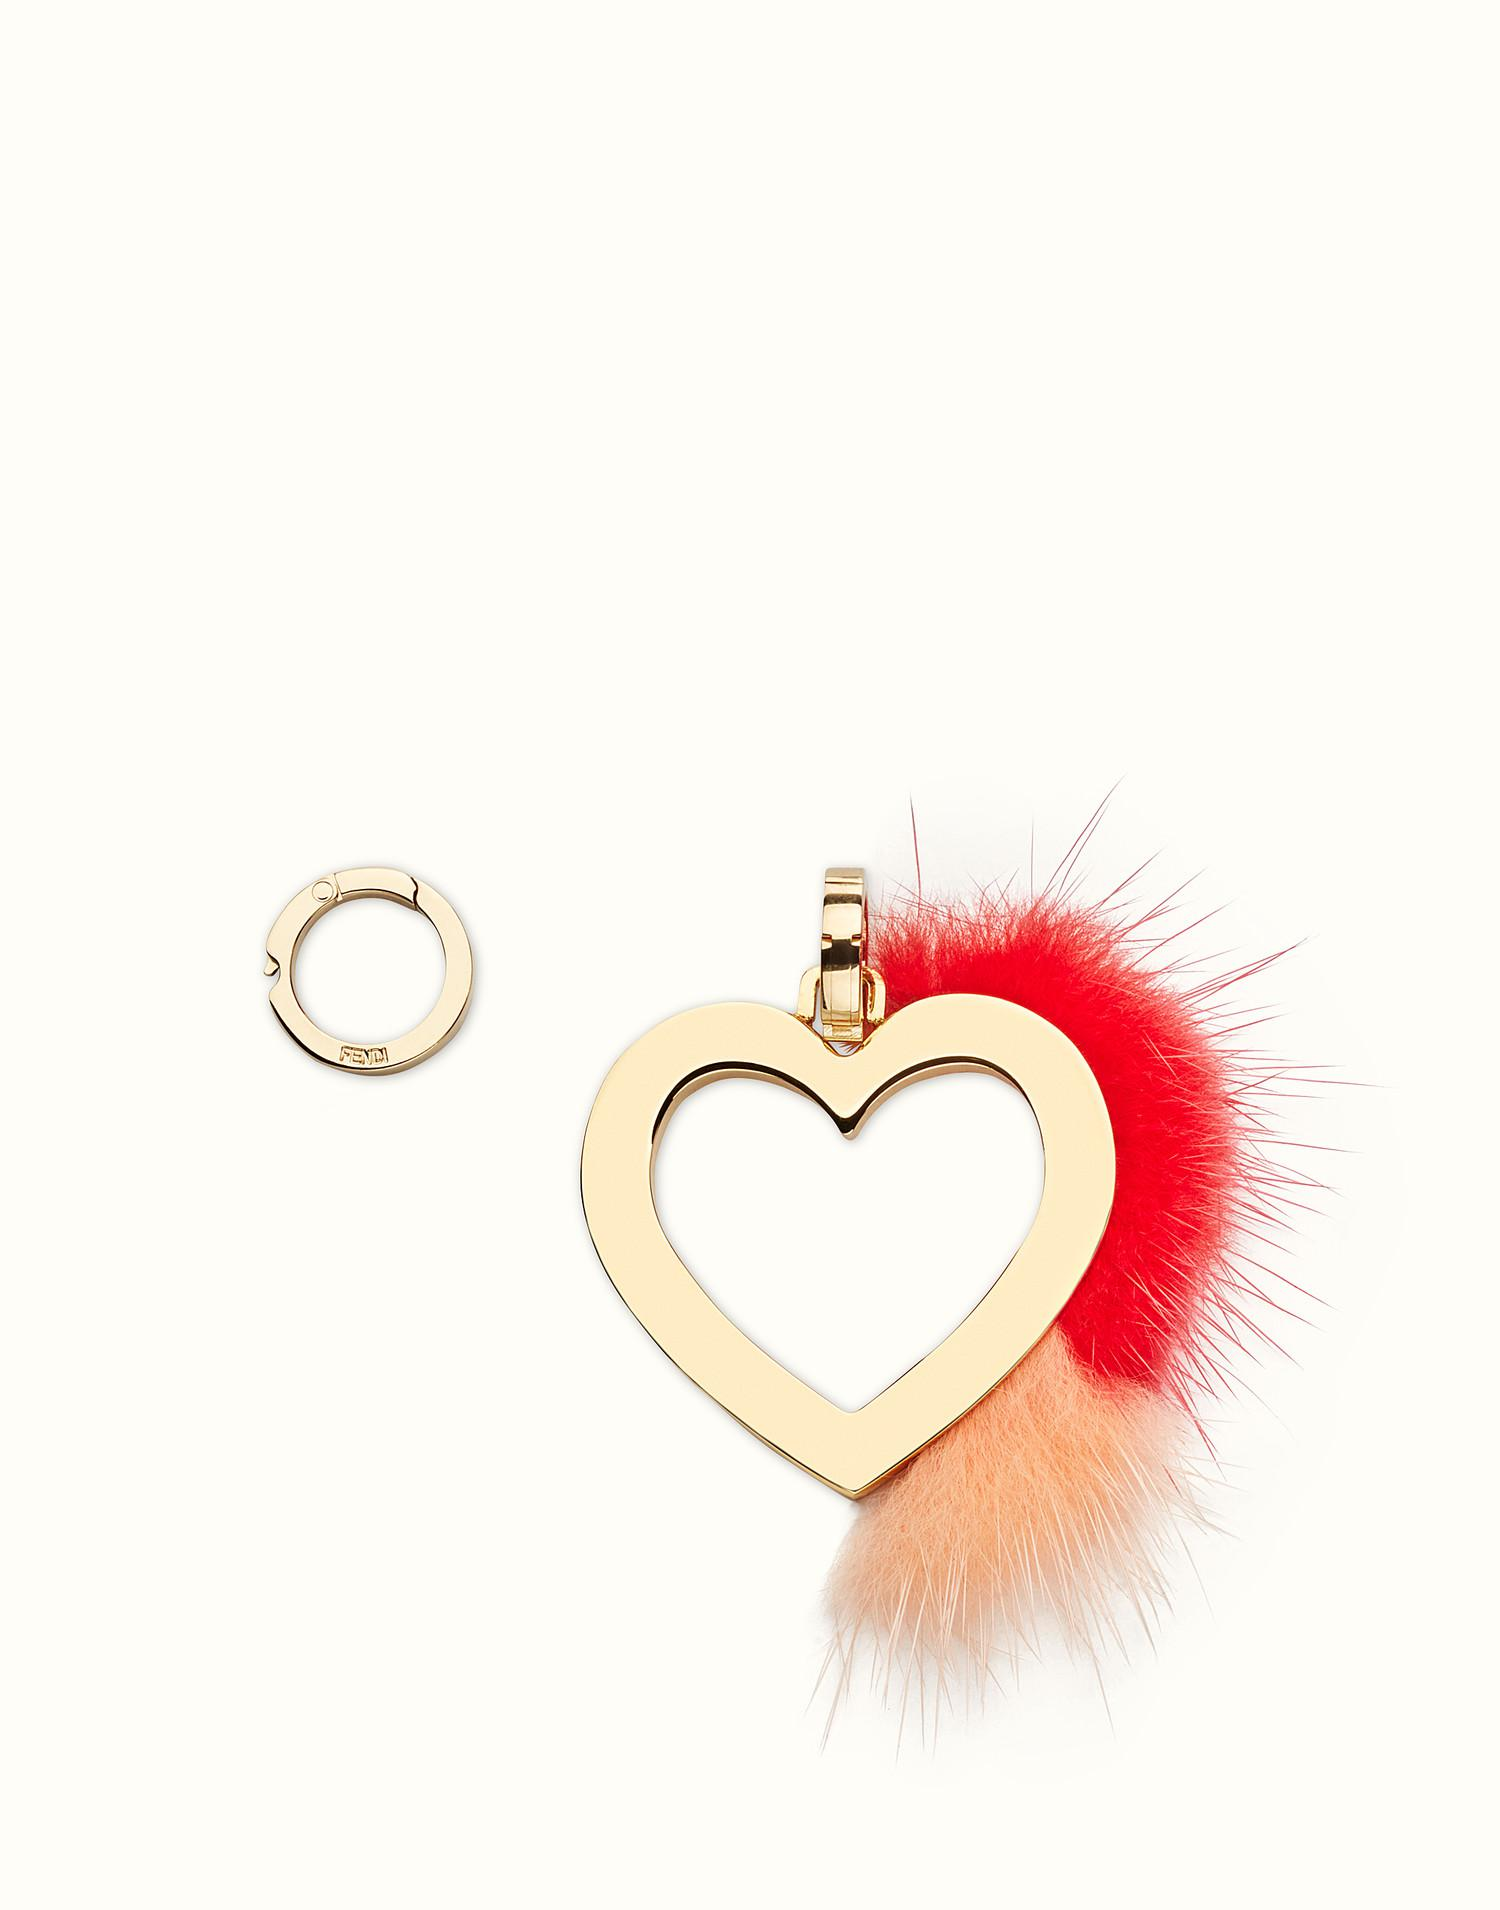 ABClick A pendant charm - Red Fendi zwDbvreS